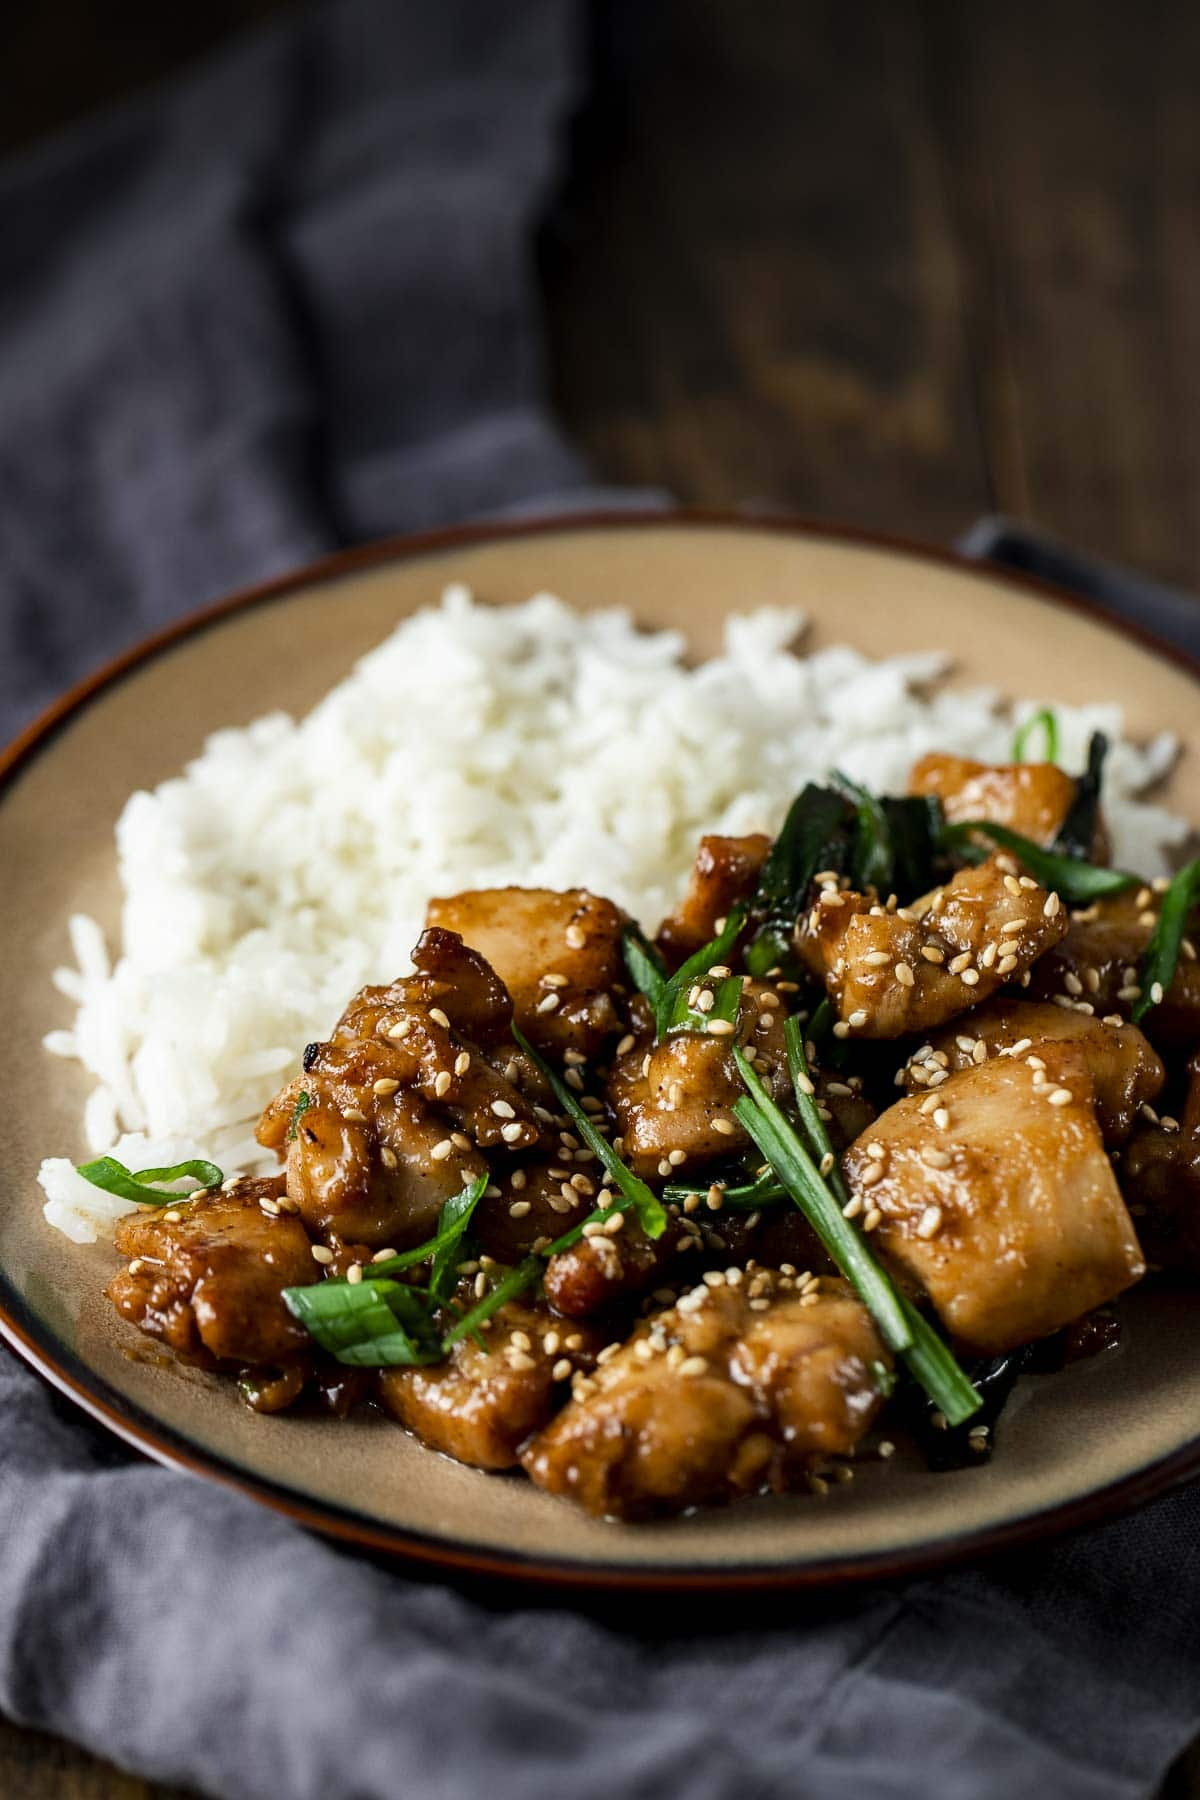 Plate of rice with shanghai chicken and green onions.